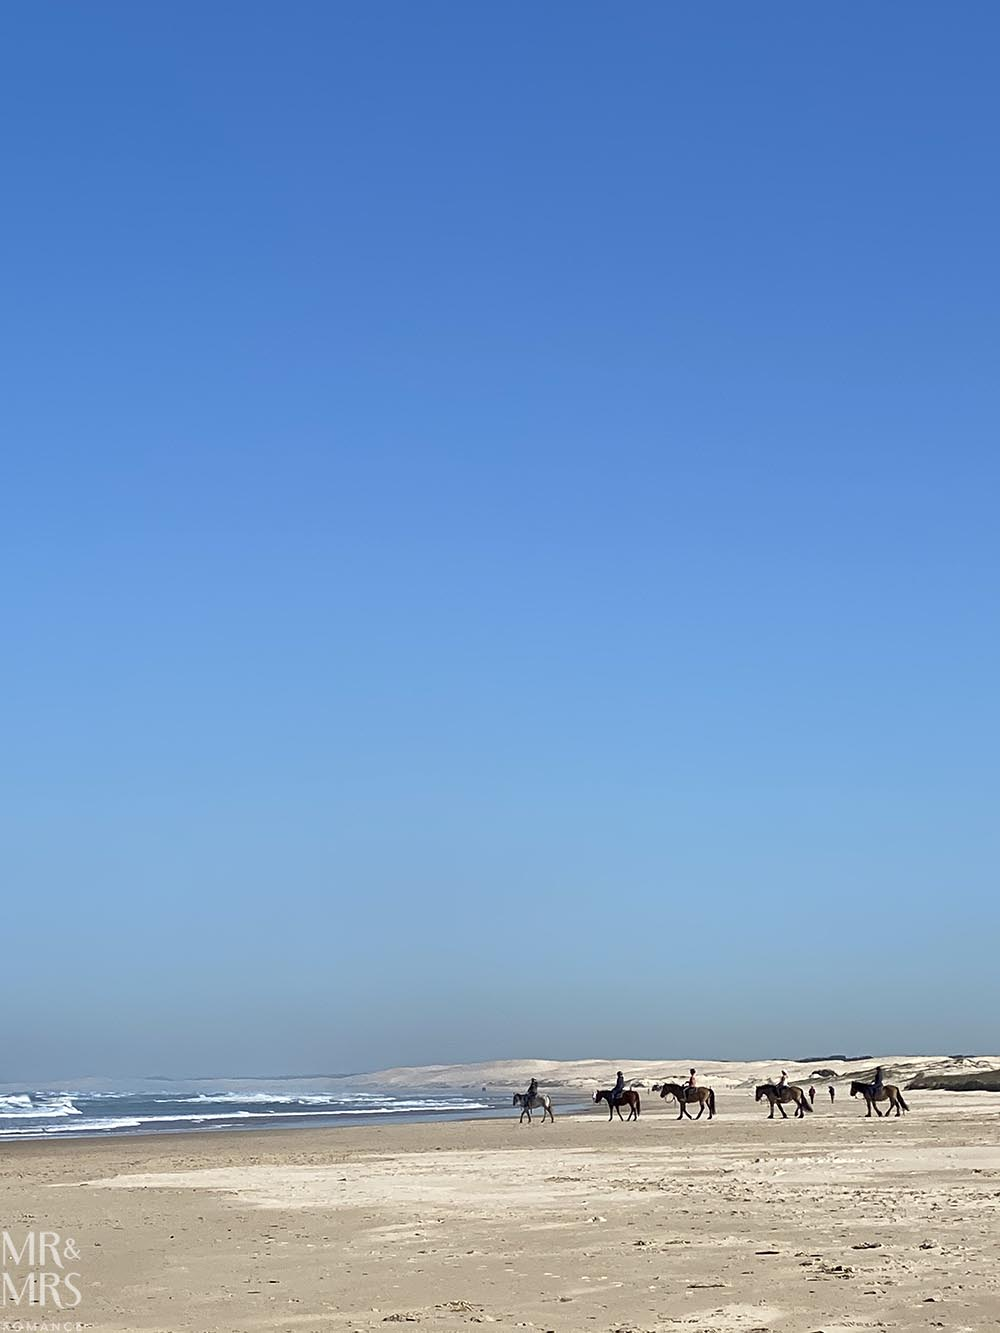 Horses on the beach, Birubi Beach Stockton BeachAnna Bay, Port Stephens NSW